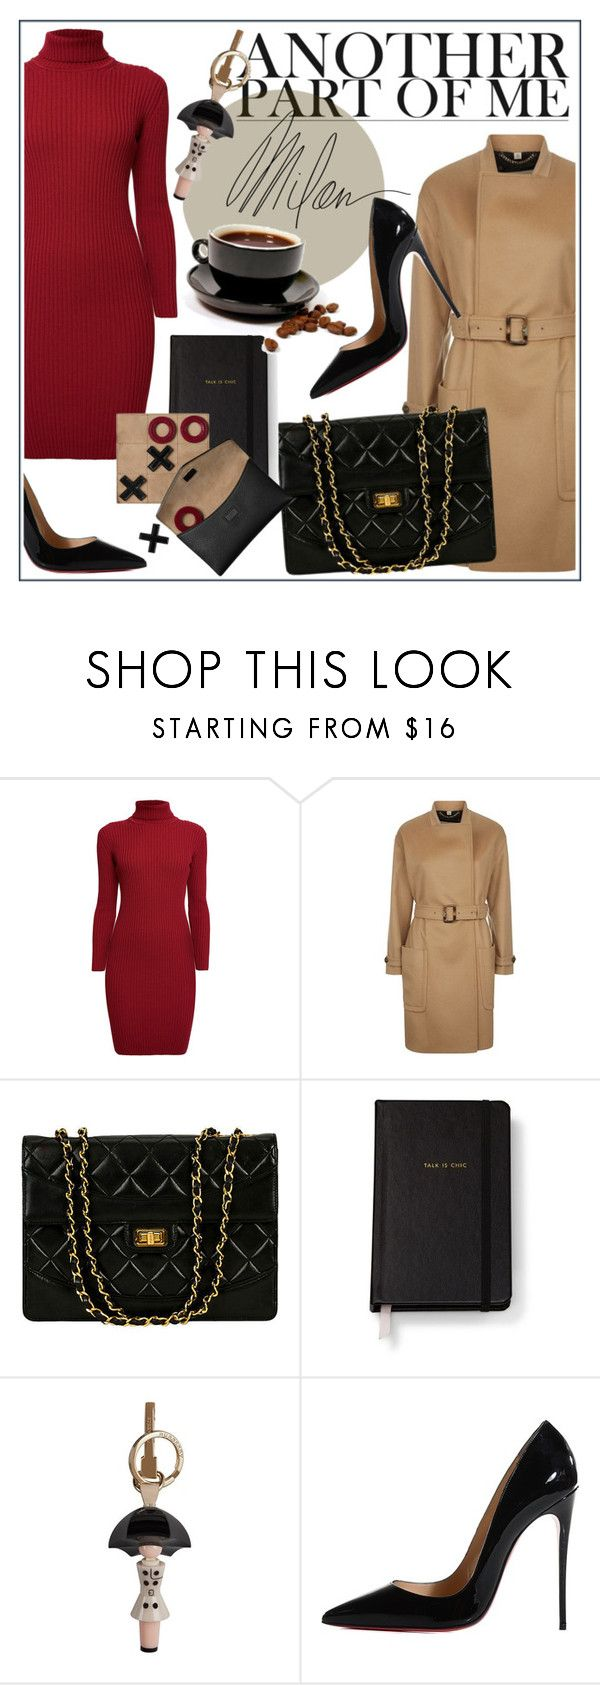 """Office Style"" by bombaysapphire ❤ liked on Polyvore featuring Rumour London, Burberry, Kate Spade, Forum, Christian Louboutin, MAC Cosmetics, Winter, Chanel, christianlouboutin and officestyle"